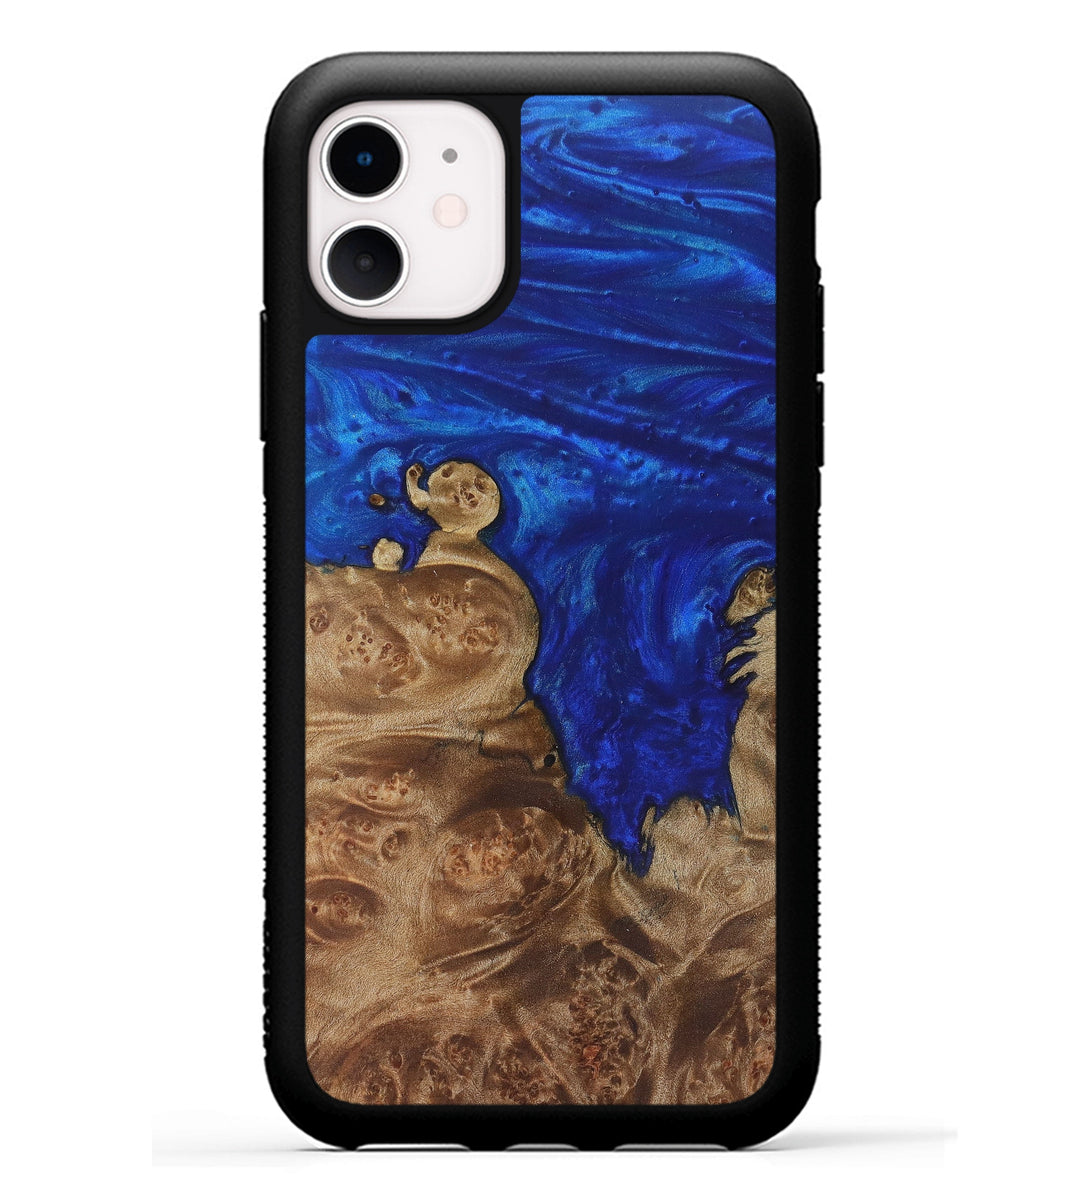 iPhone 11 Wood+Resin Phone Case - Bradley (Dark Blue, 369323)